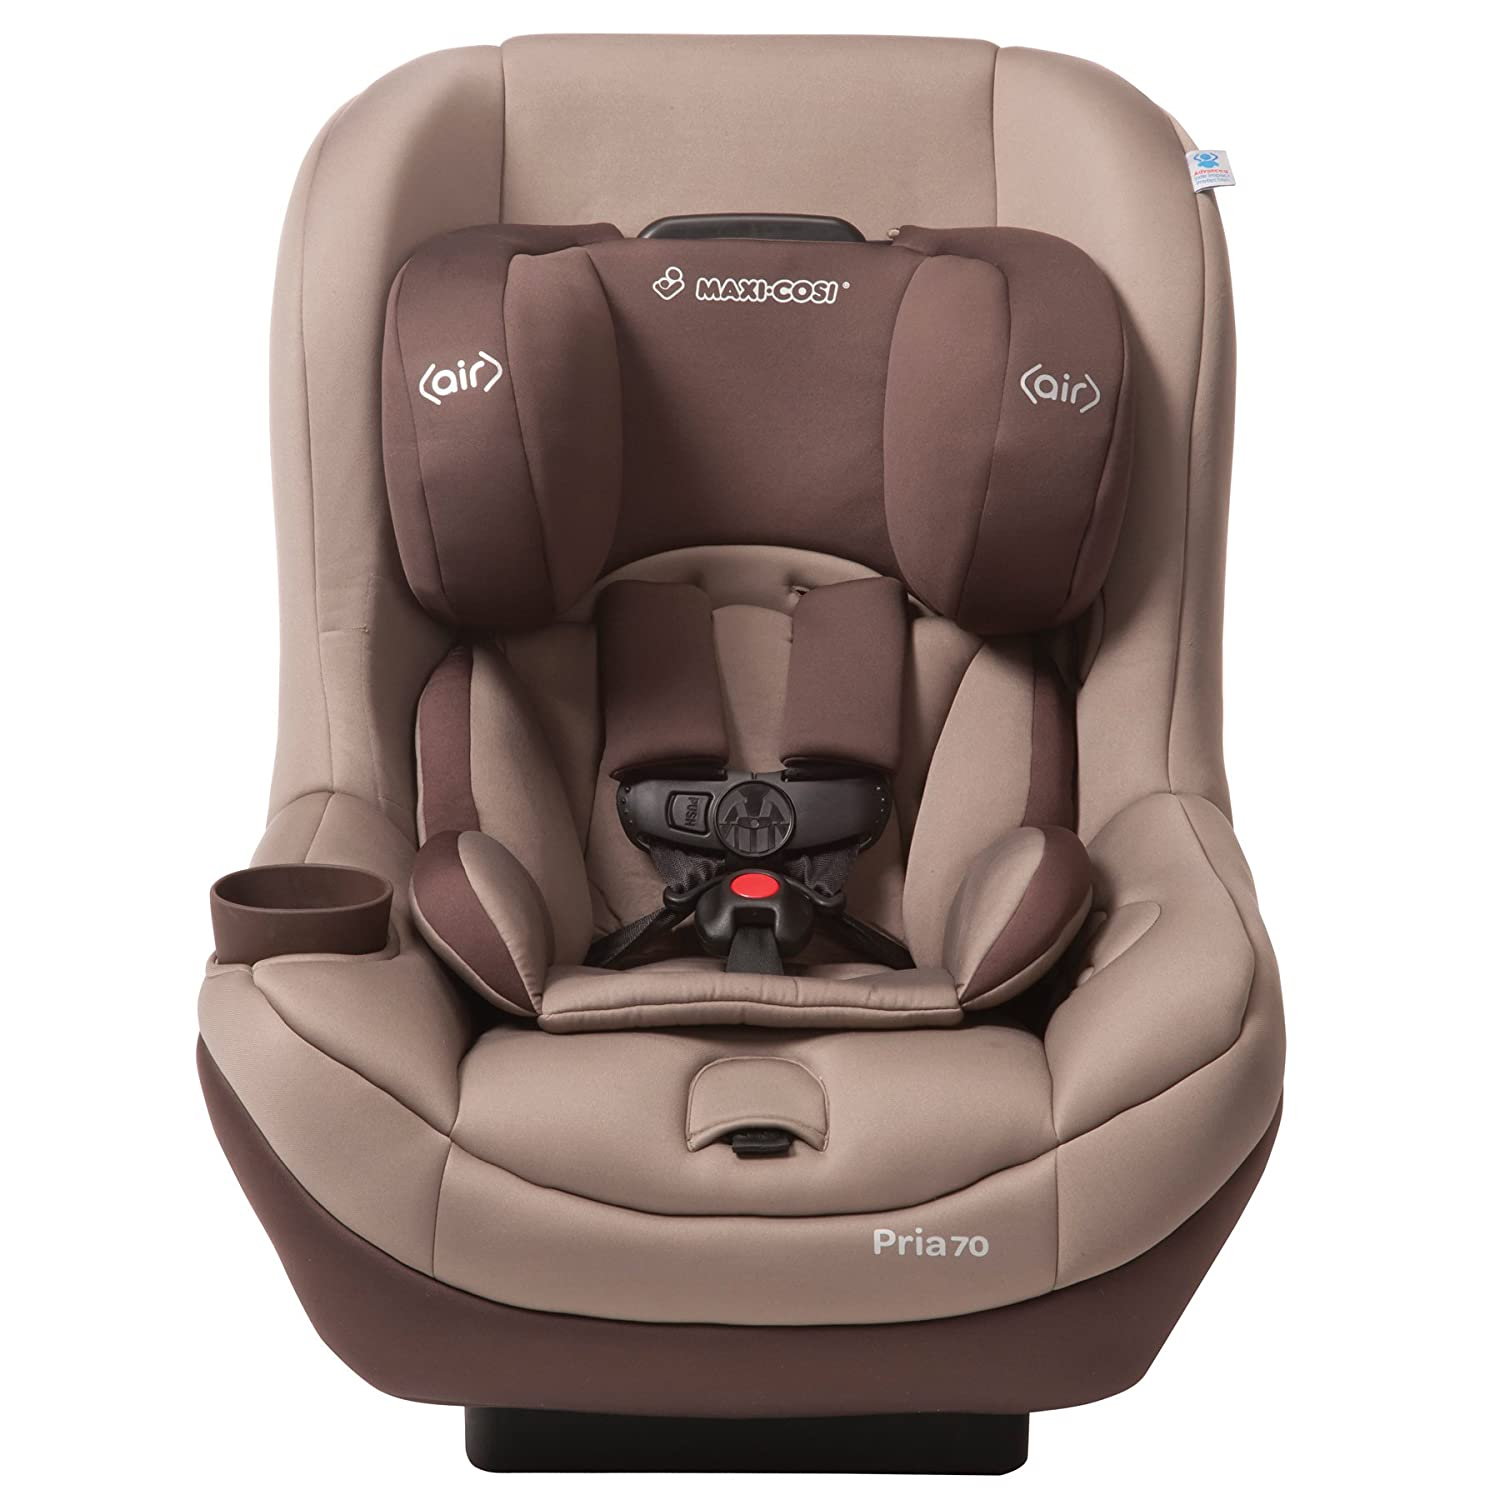 brown car seat images. Black Bedroom Furniture Sets. Home Design Ideas